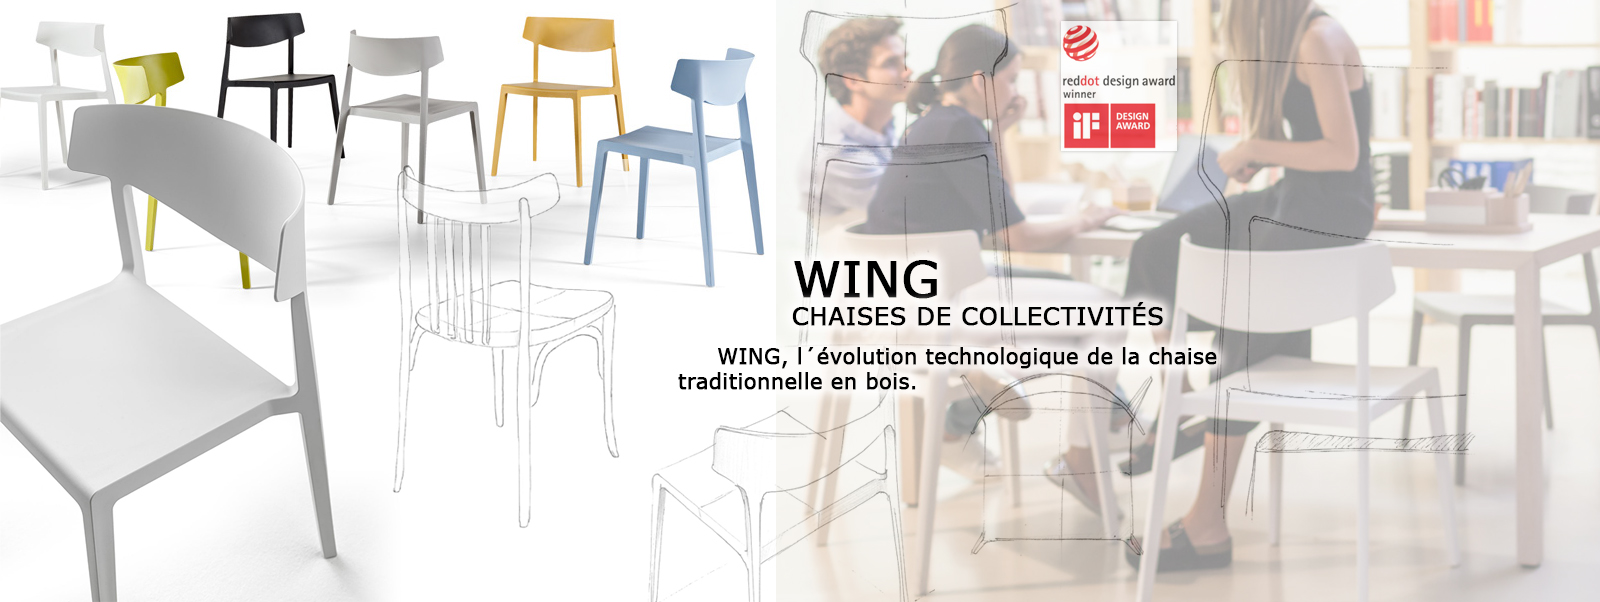 wing_chaises